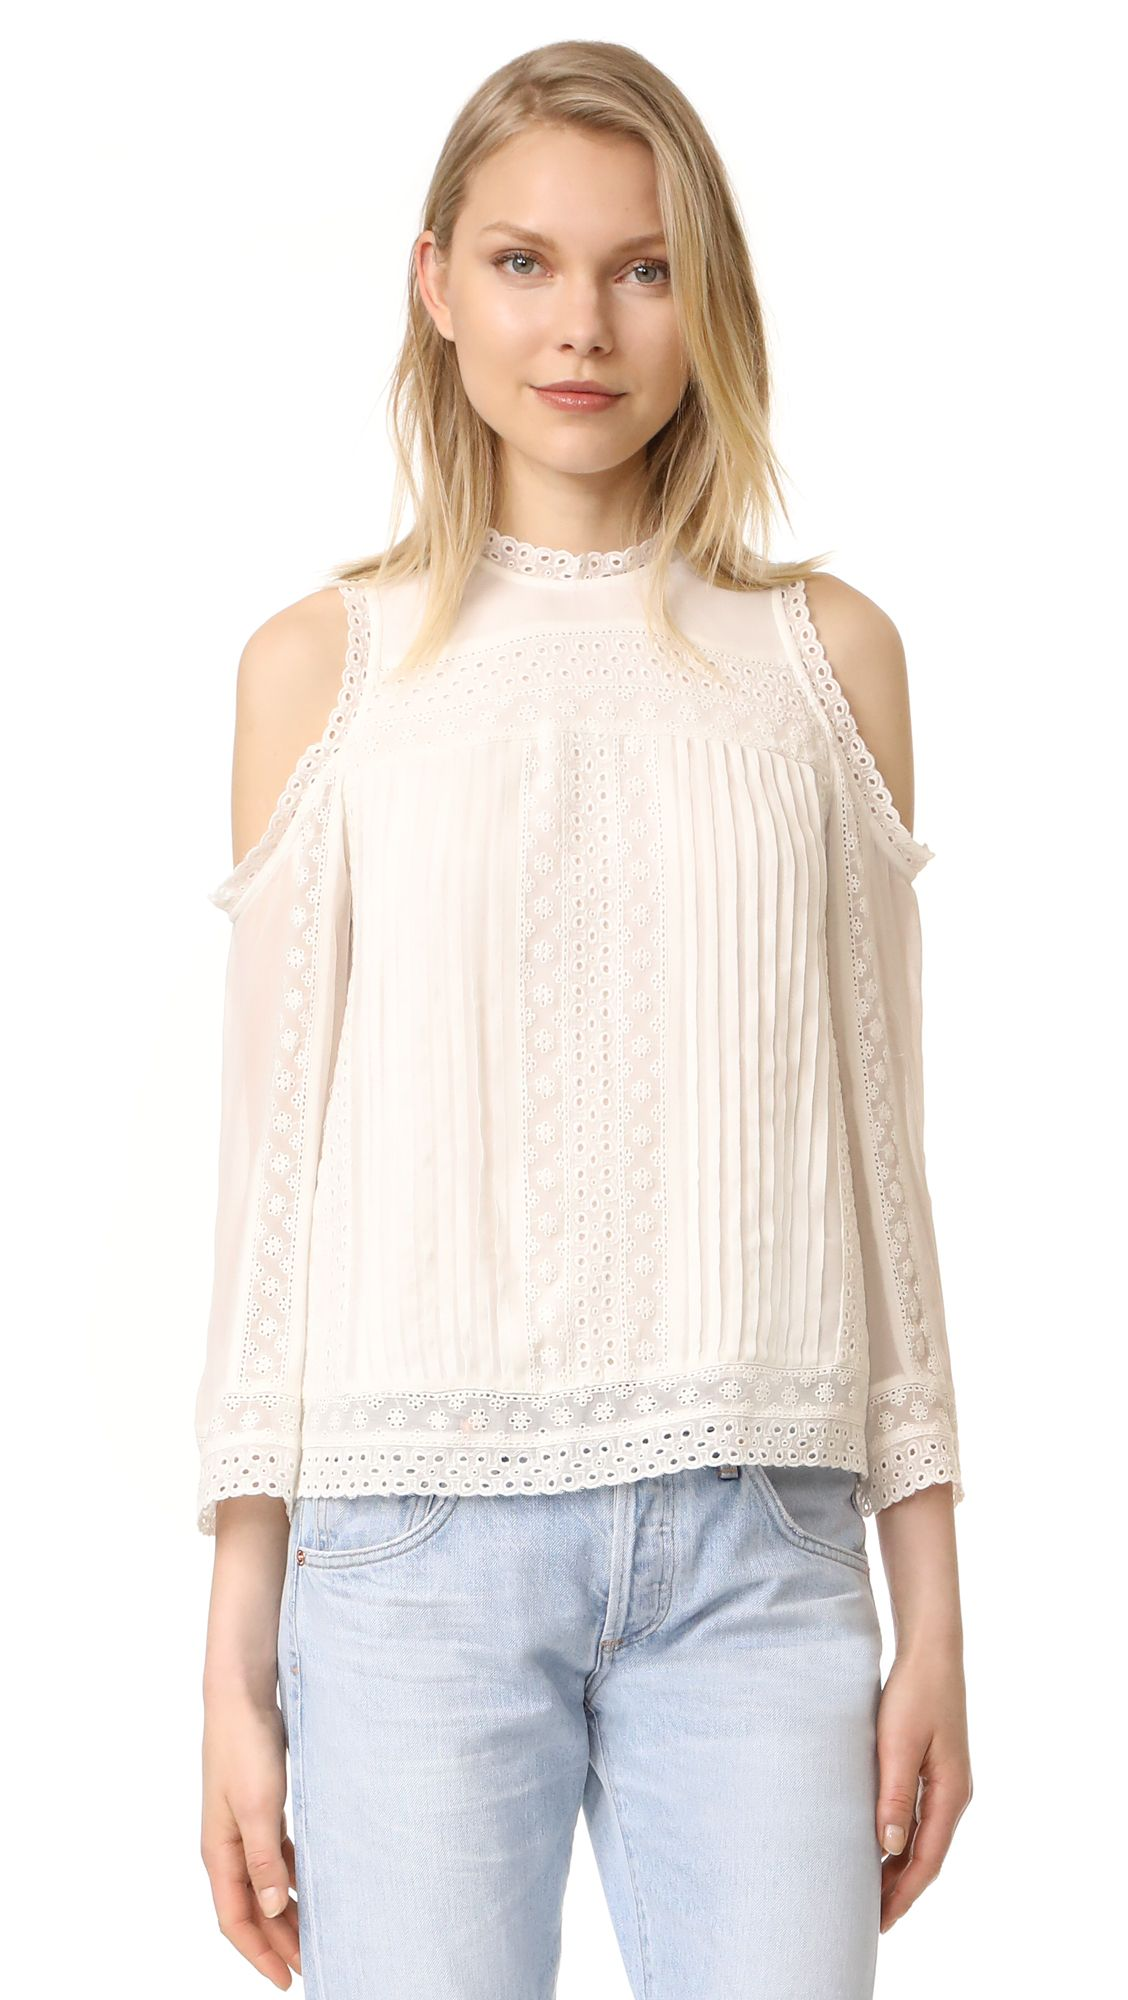 a0be20217b81f Alice + Olivia Ofelia Embroidered Cold Shoulder Blouse